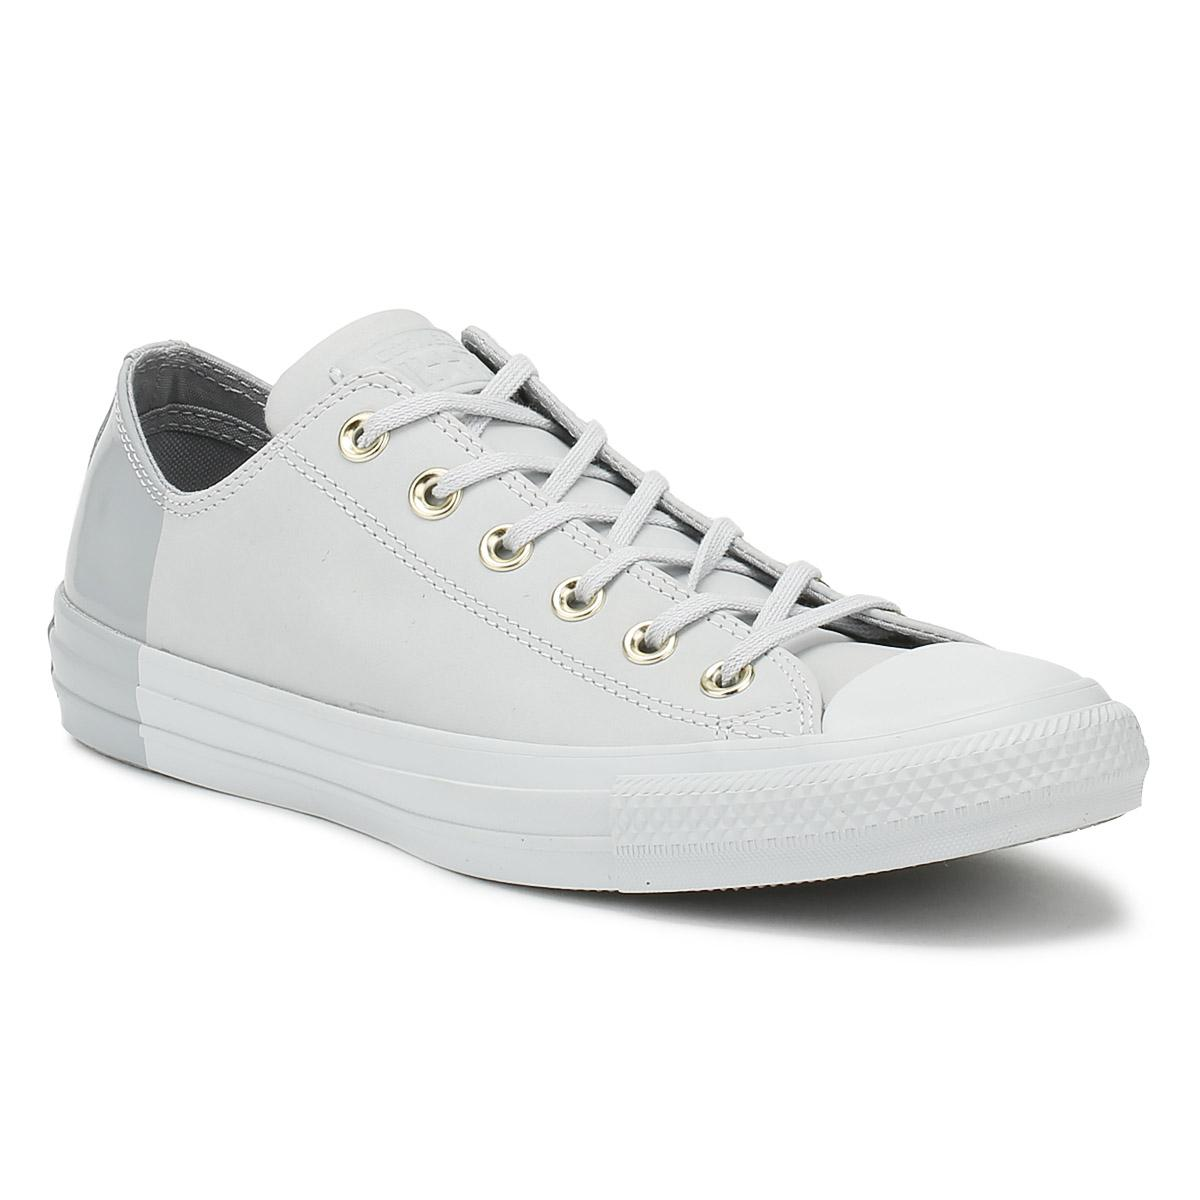 9b58e43d2aeed2 Converse Chuck Taylor All Star Womens Pure Platinum Ox Trainers in ...